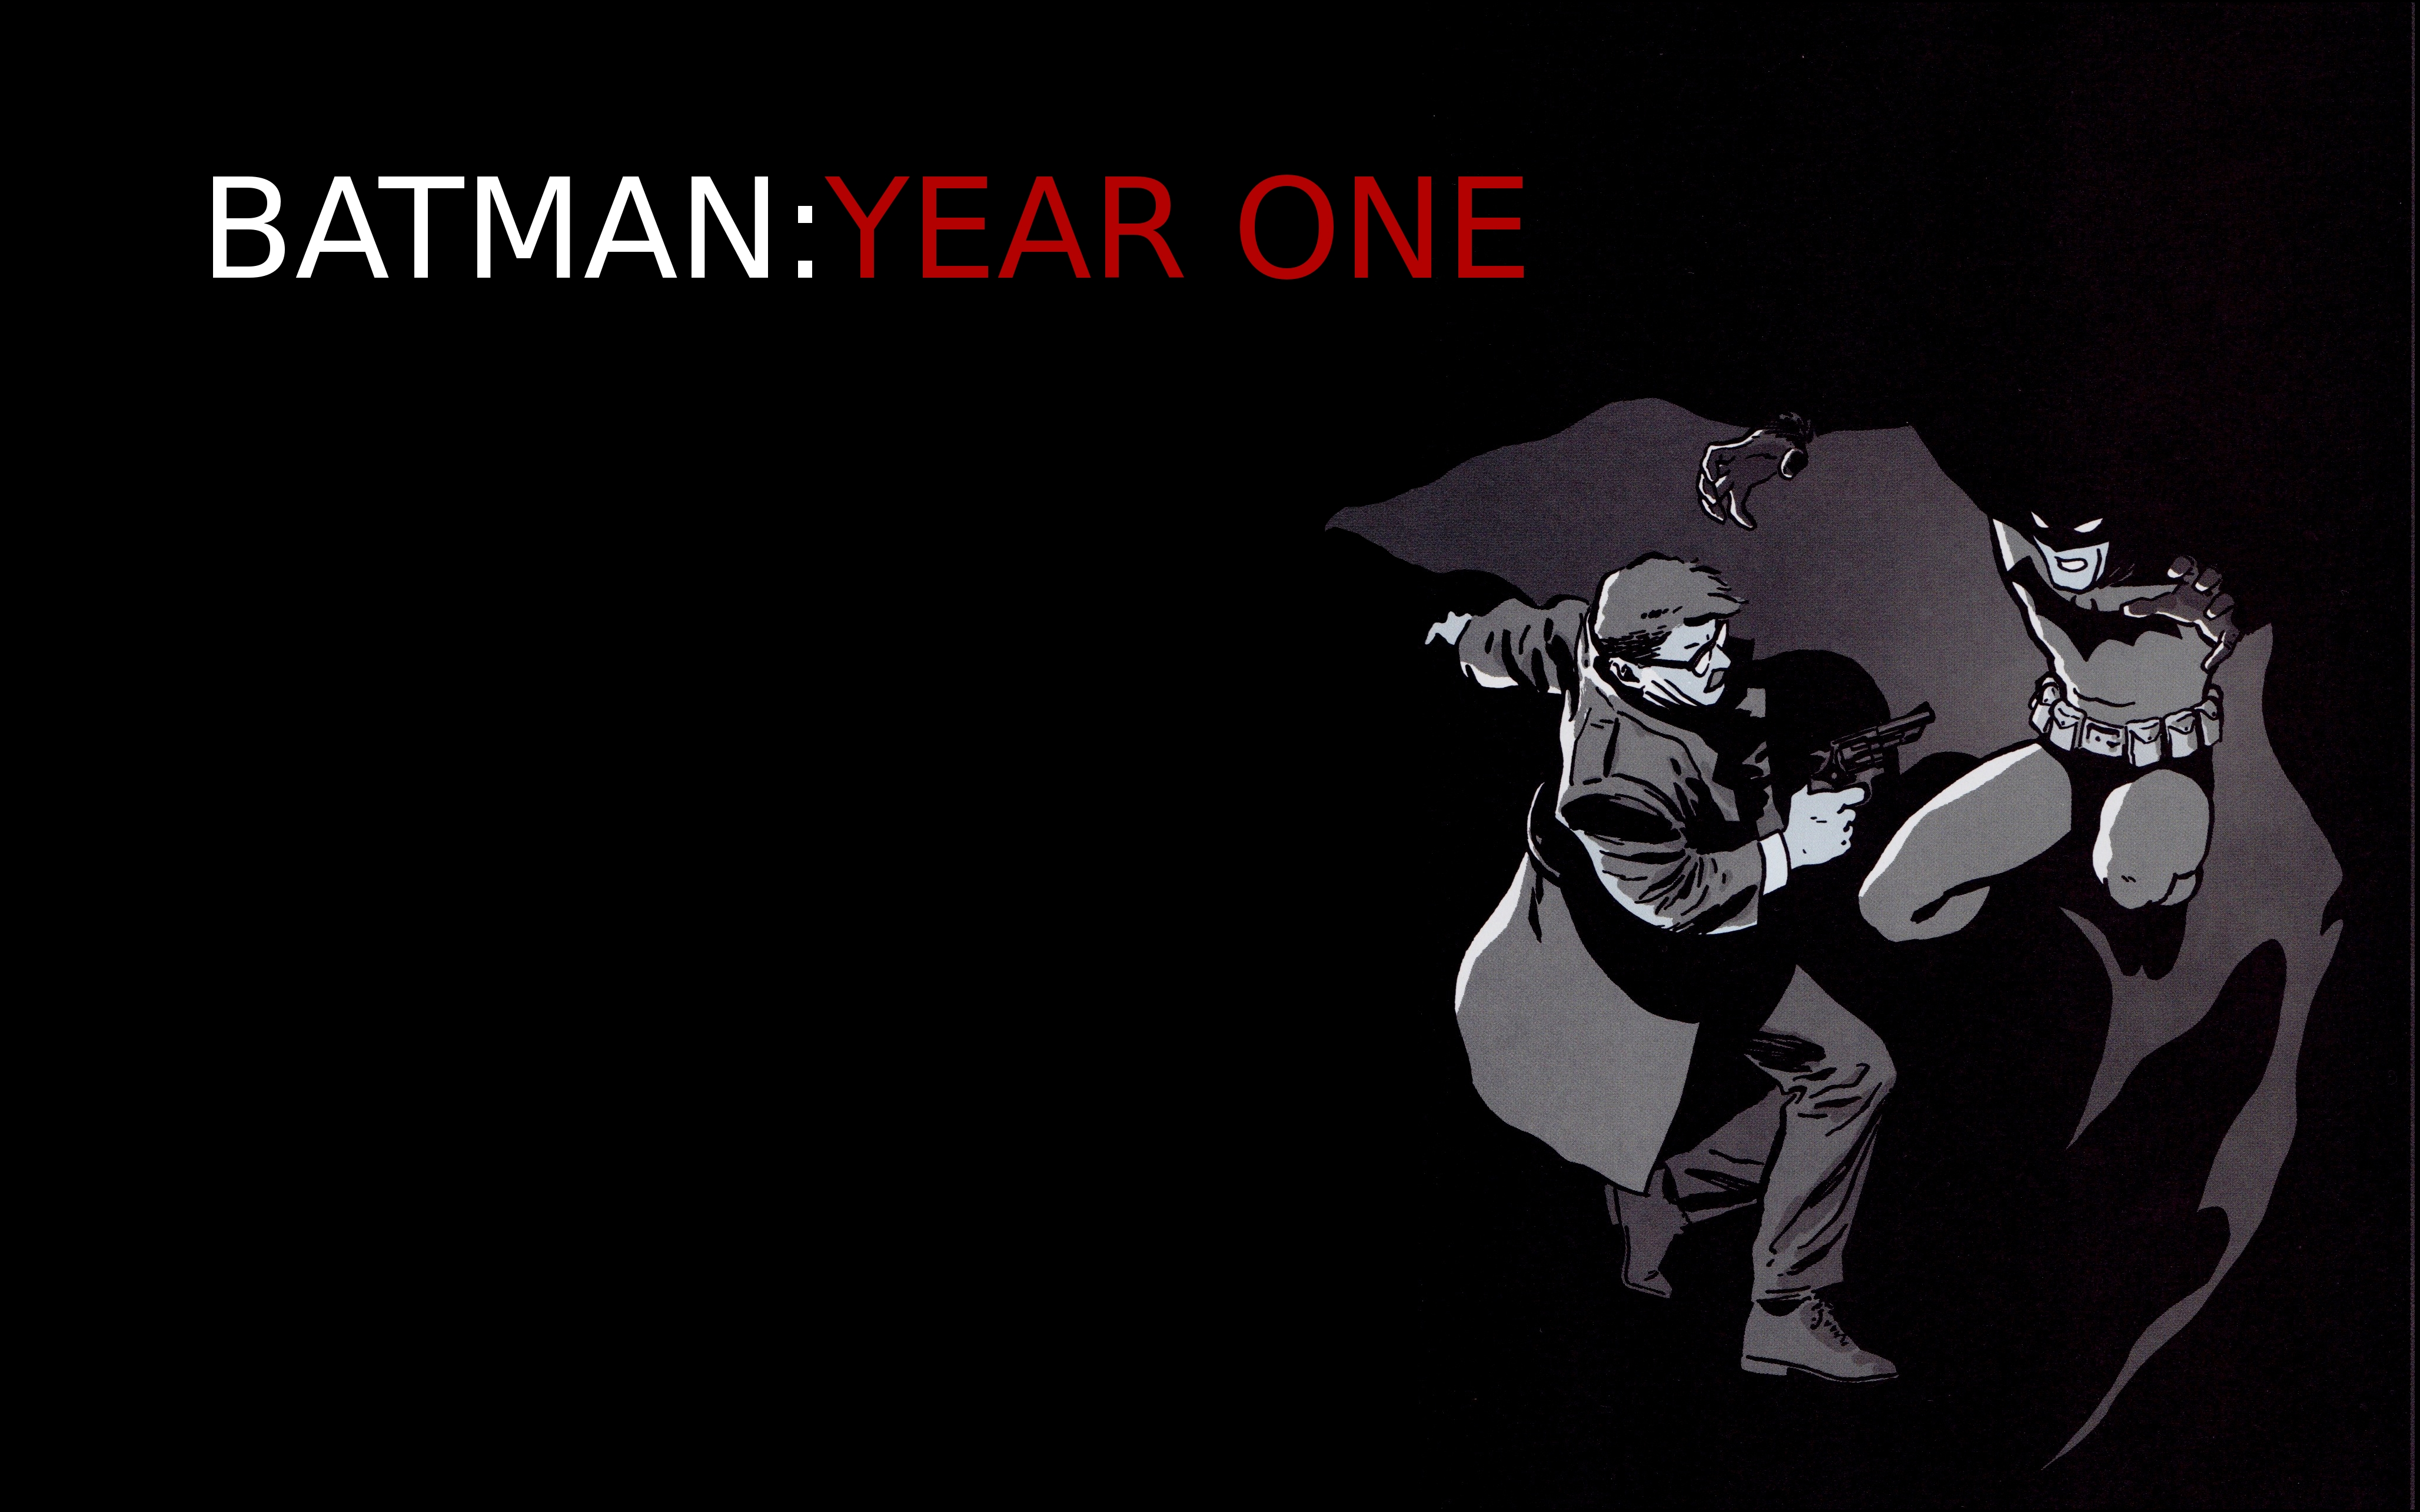 batman year one thesis Together they worked on daredevil: born again (1985–86) and batman: year one thesis: asterios polyp by david mazzucchelli by christopher mccarthy.